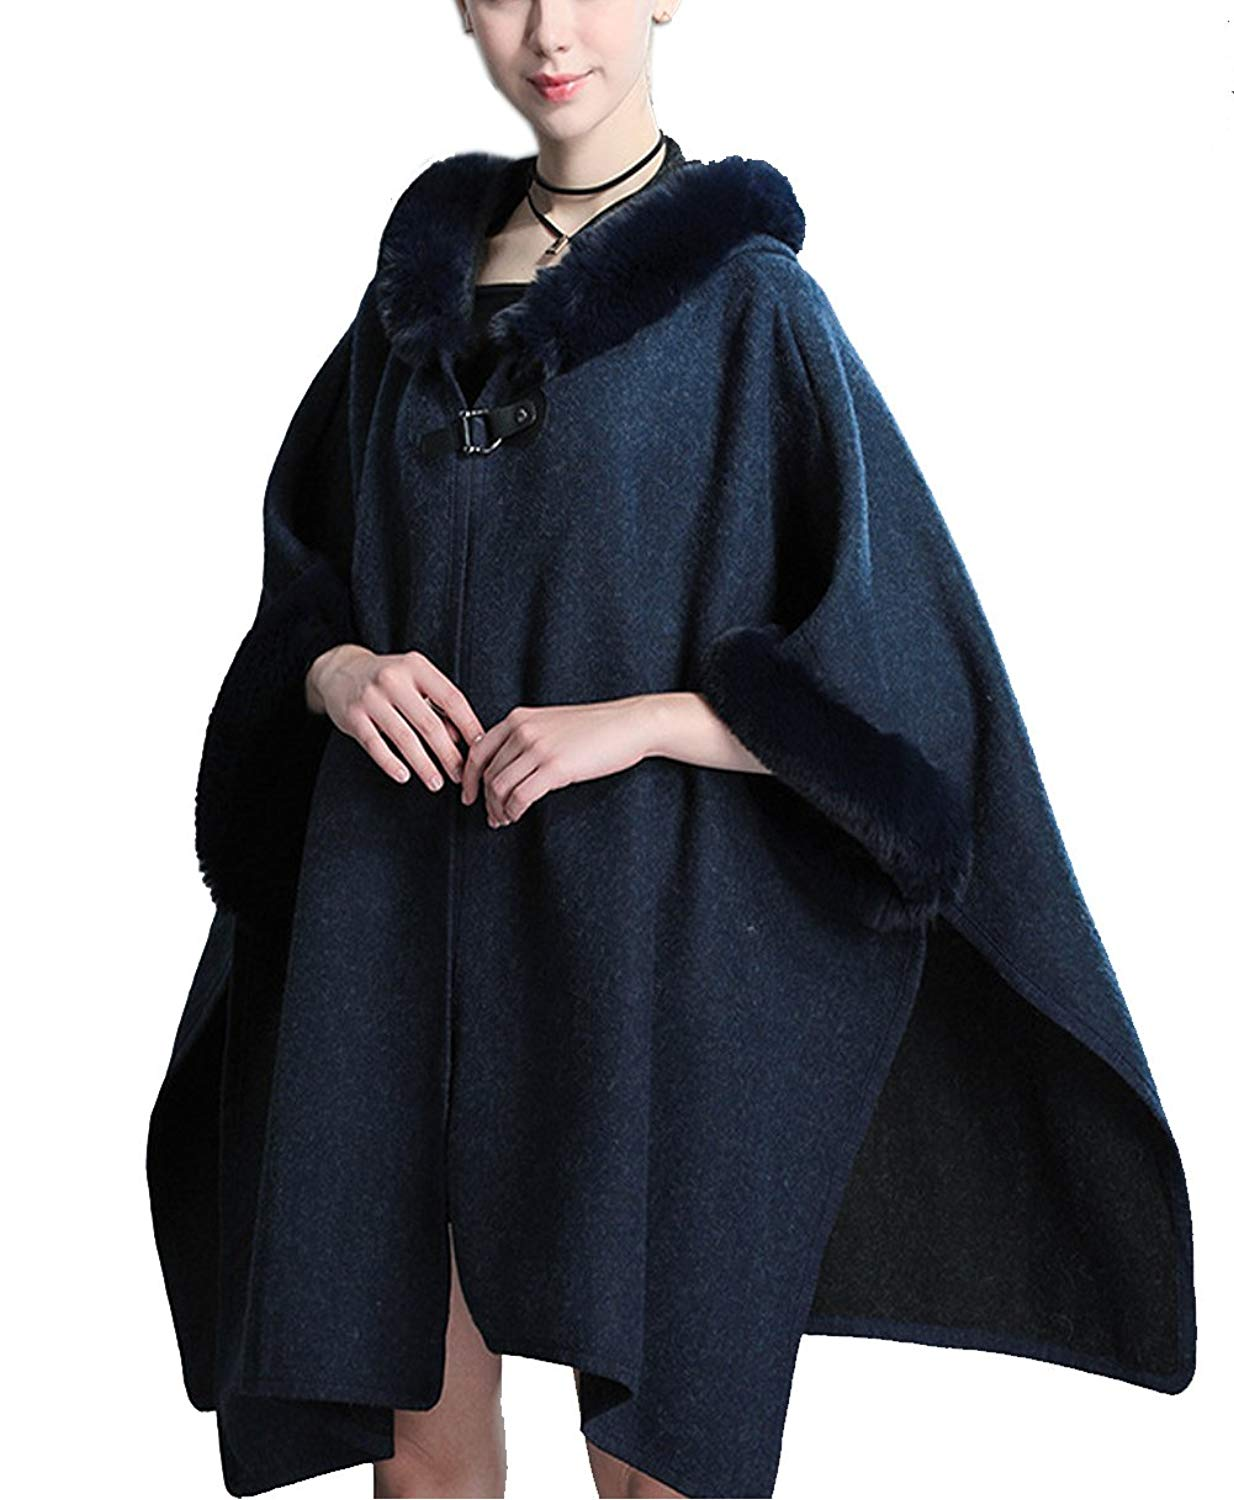 d41813debc973 Get Quotations · Hotmiss Women Bridal Faux Fur Shawl Wraps Long Sleeve Cloak  Coat Sweater Cape With Fur Hooded